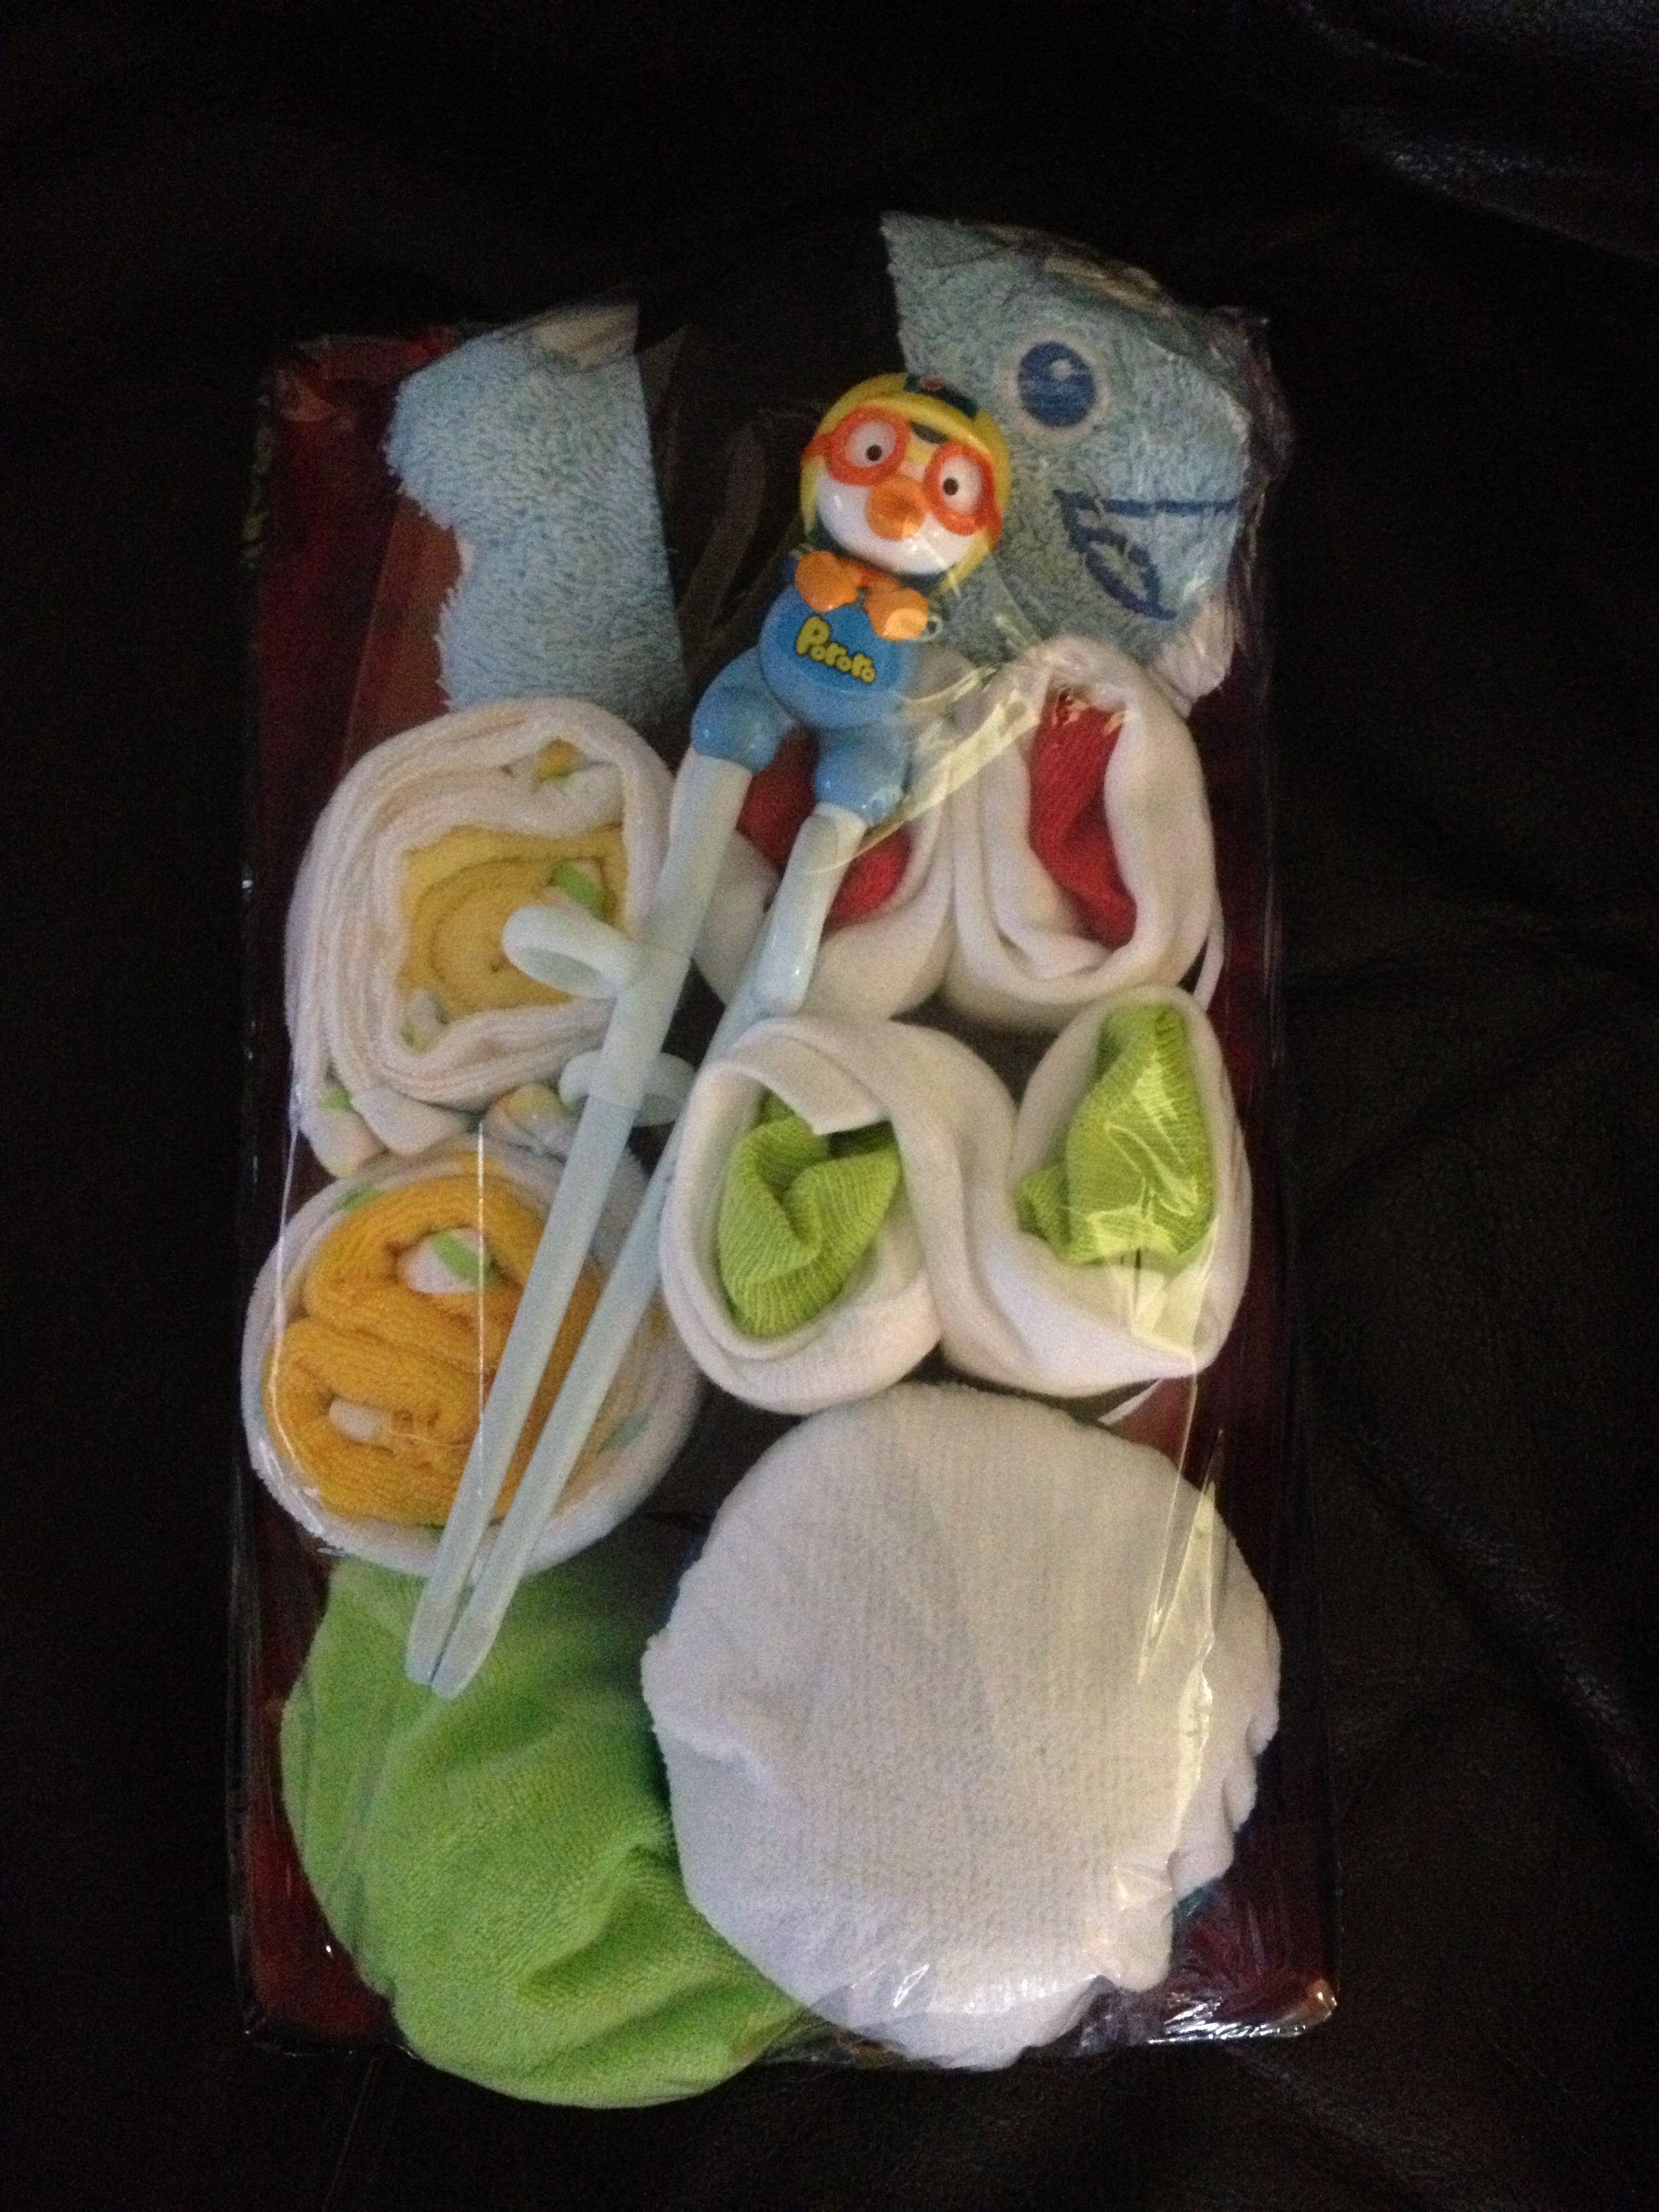 My sushi themed baby shower gift. Mahalo to tipjunkie and creative dollar for the ideas.